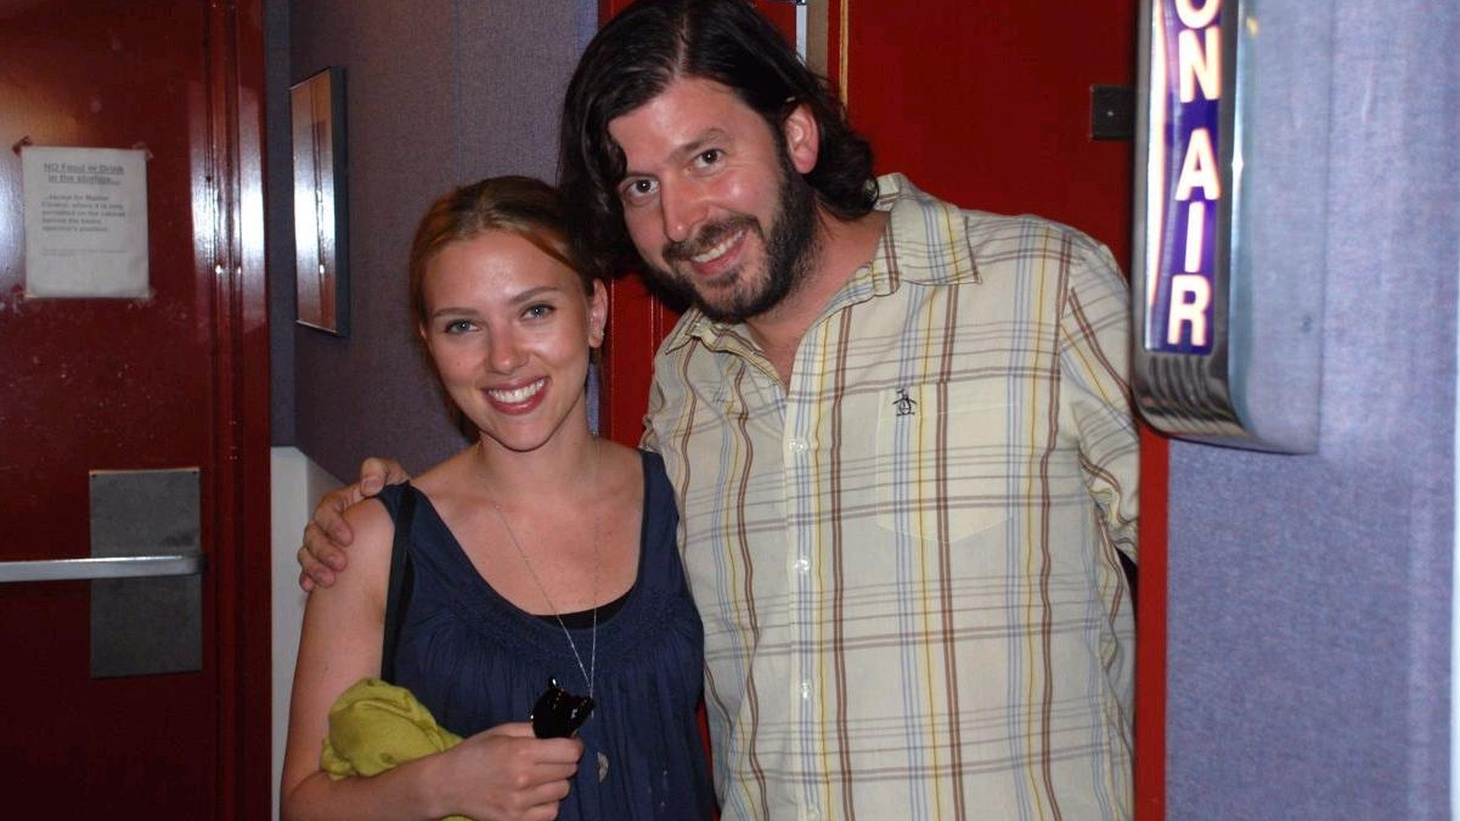 Actress Scarlett Johansson reminisces about her musical passions starting with her toddler years, from a blue-eyed crooner that launched her ambitions as a singer to the California band she identified with as a secretive teenager, and a cinematic artist specializing in strange stories. Scarlett recently released an album with singer Pete Yorn on Rhino Records called The Break Up. She will also be appearing in Iron Man 2 which opens next year.